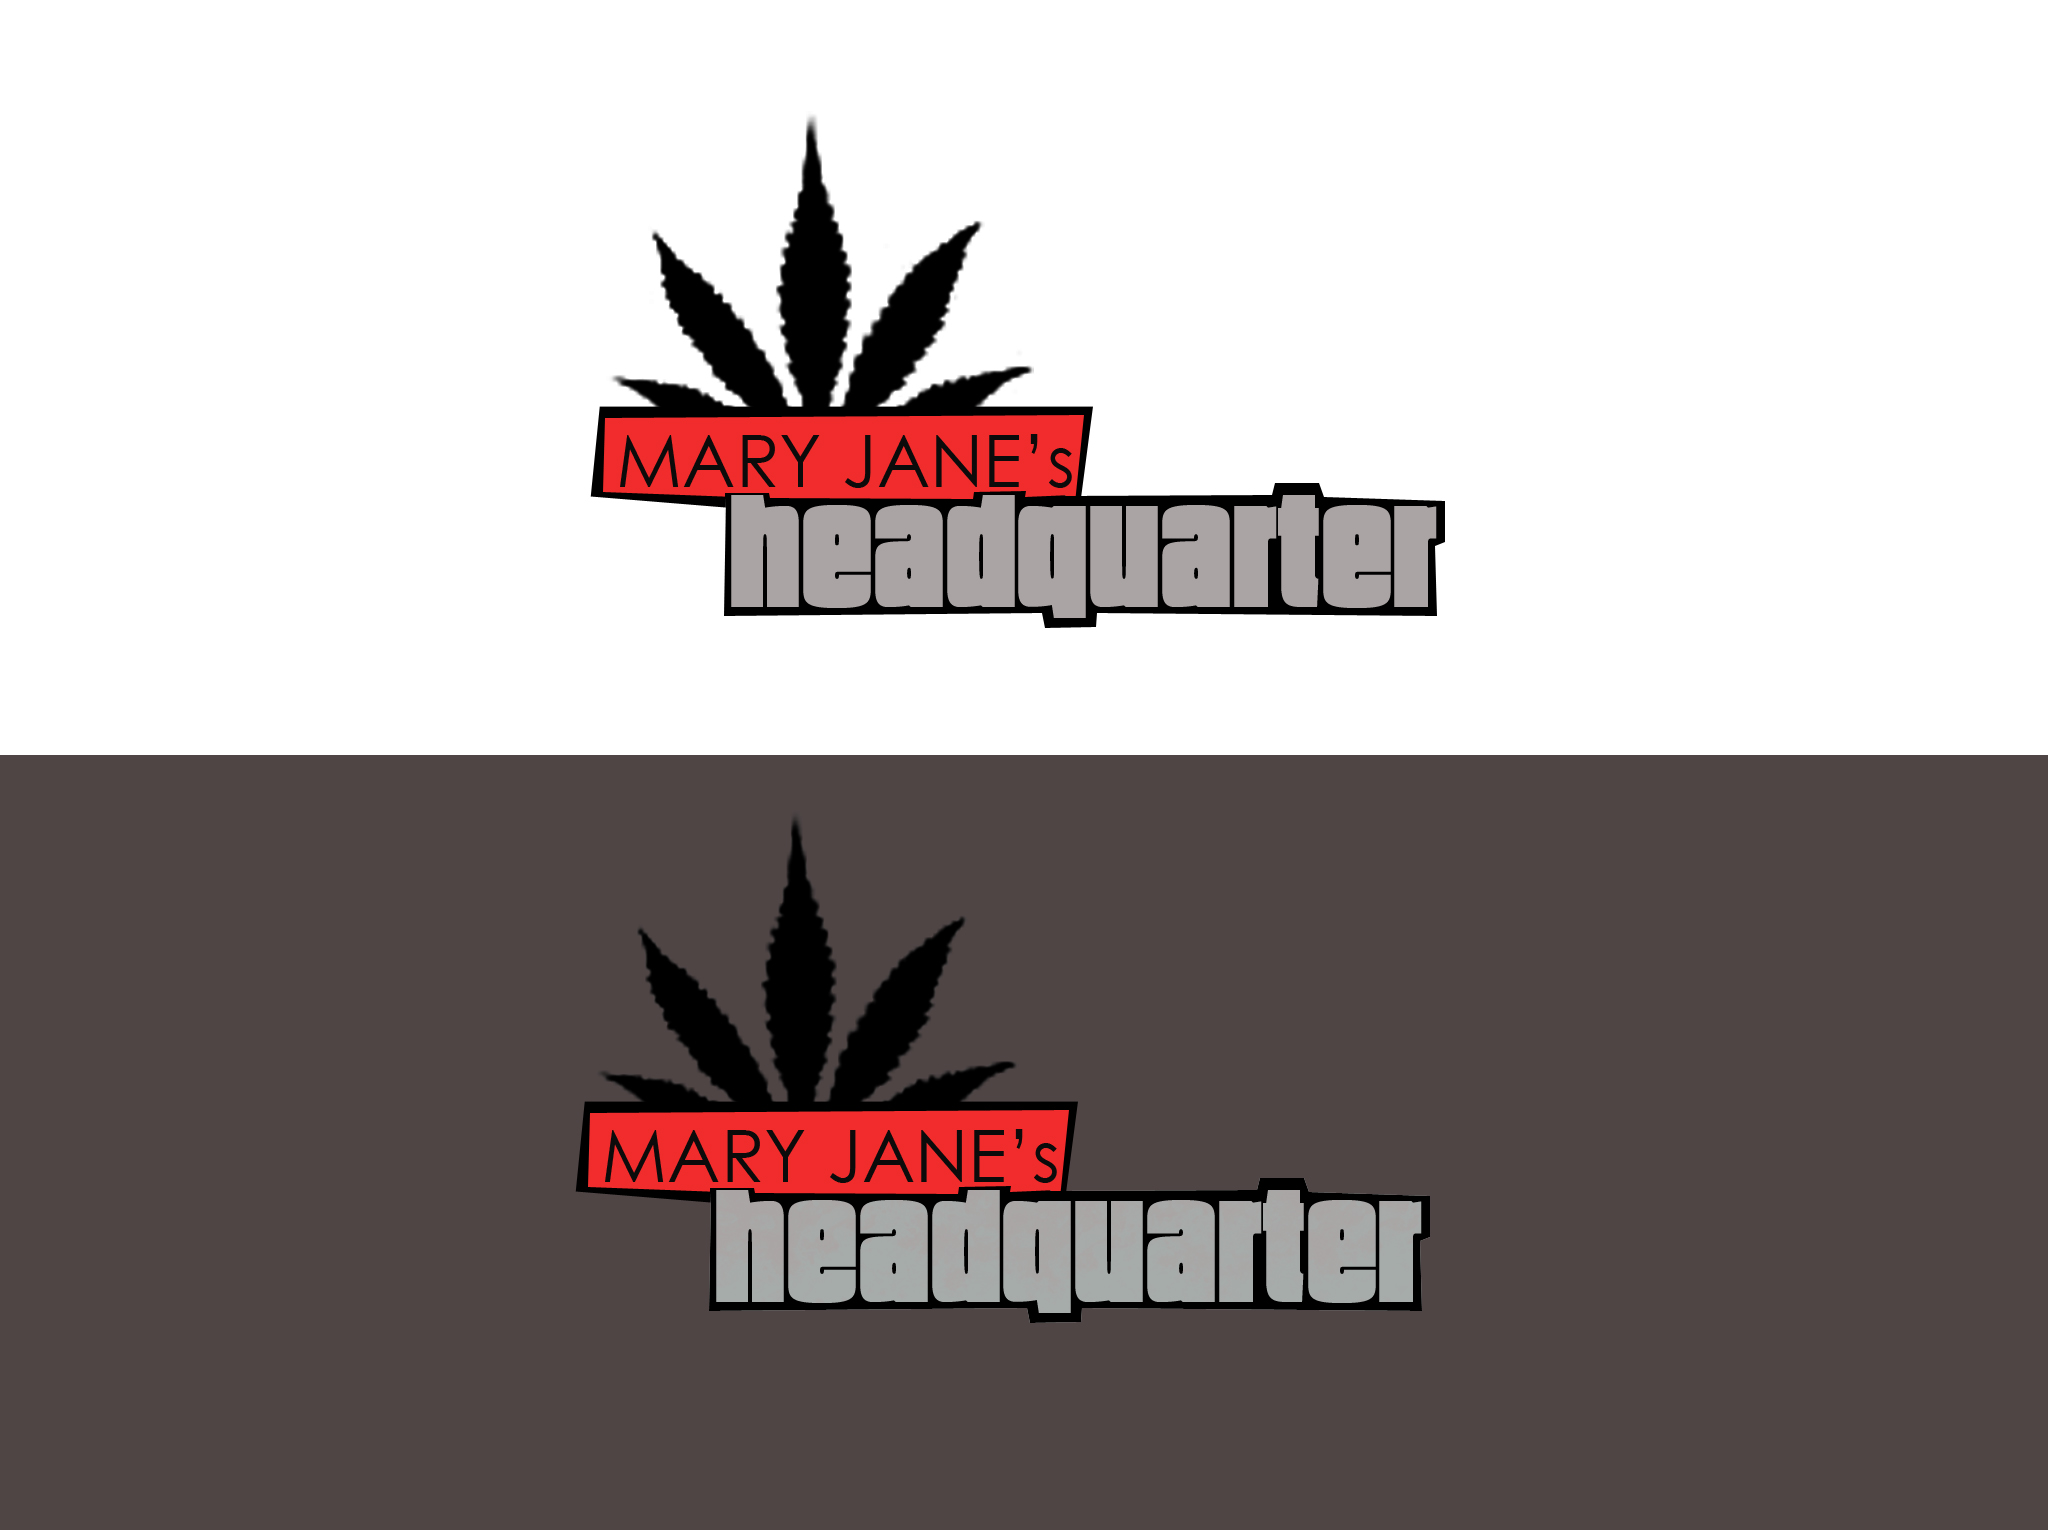 Logo Design by Unique Gallardo - Entry No. 96 in the Logo Design Contest Mary Jane's Headquarters Logo Design.